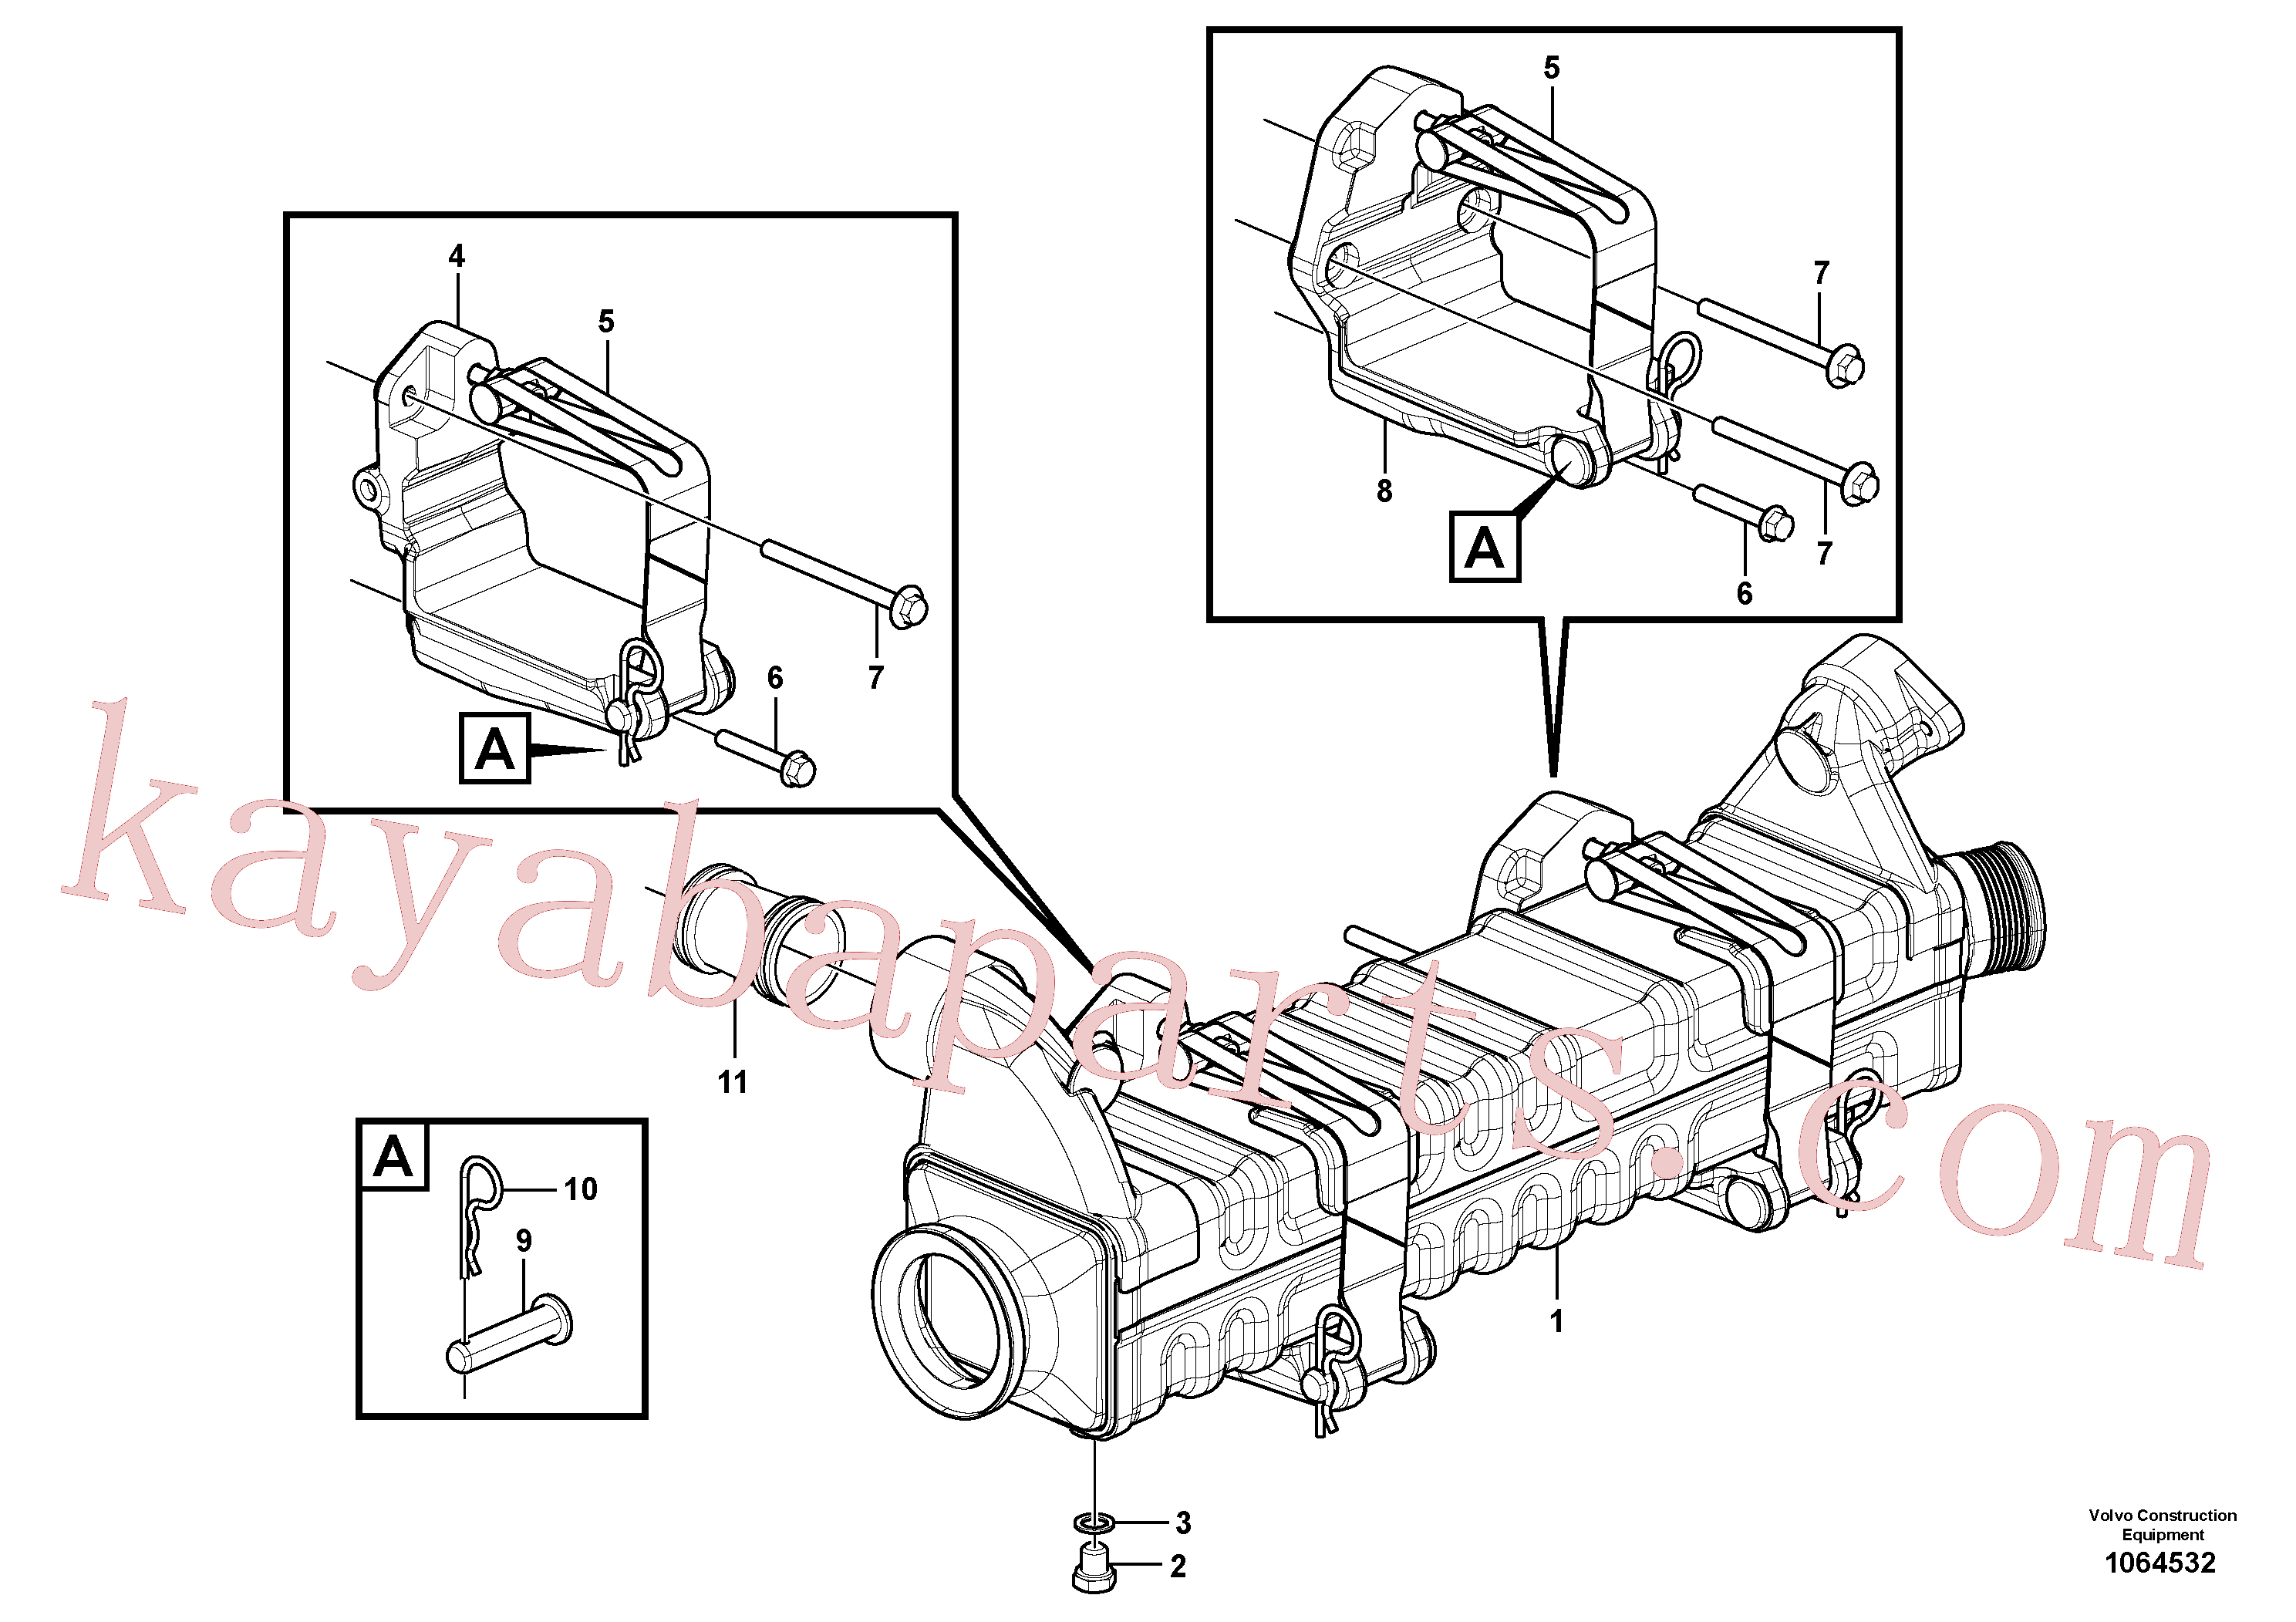 VOE13964907 for Volvo Egr - Radiator with fitting parts(1064532 assembly)